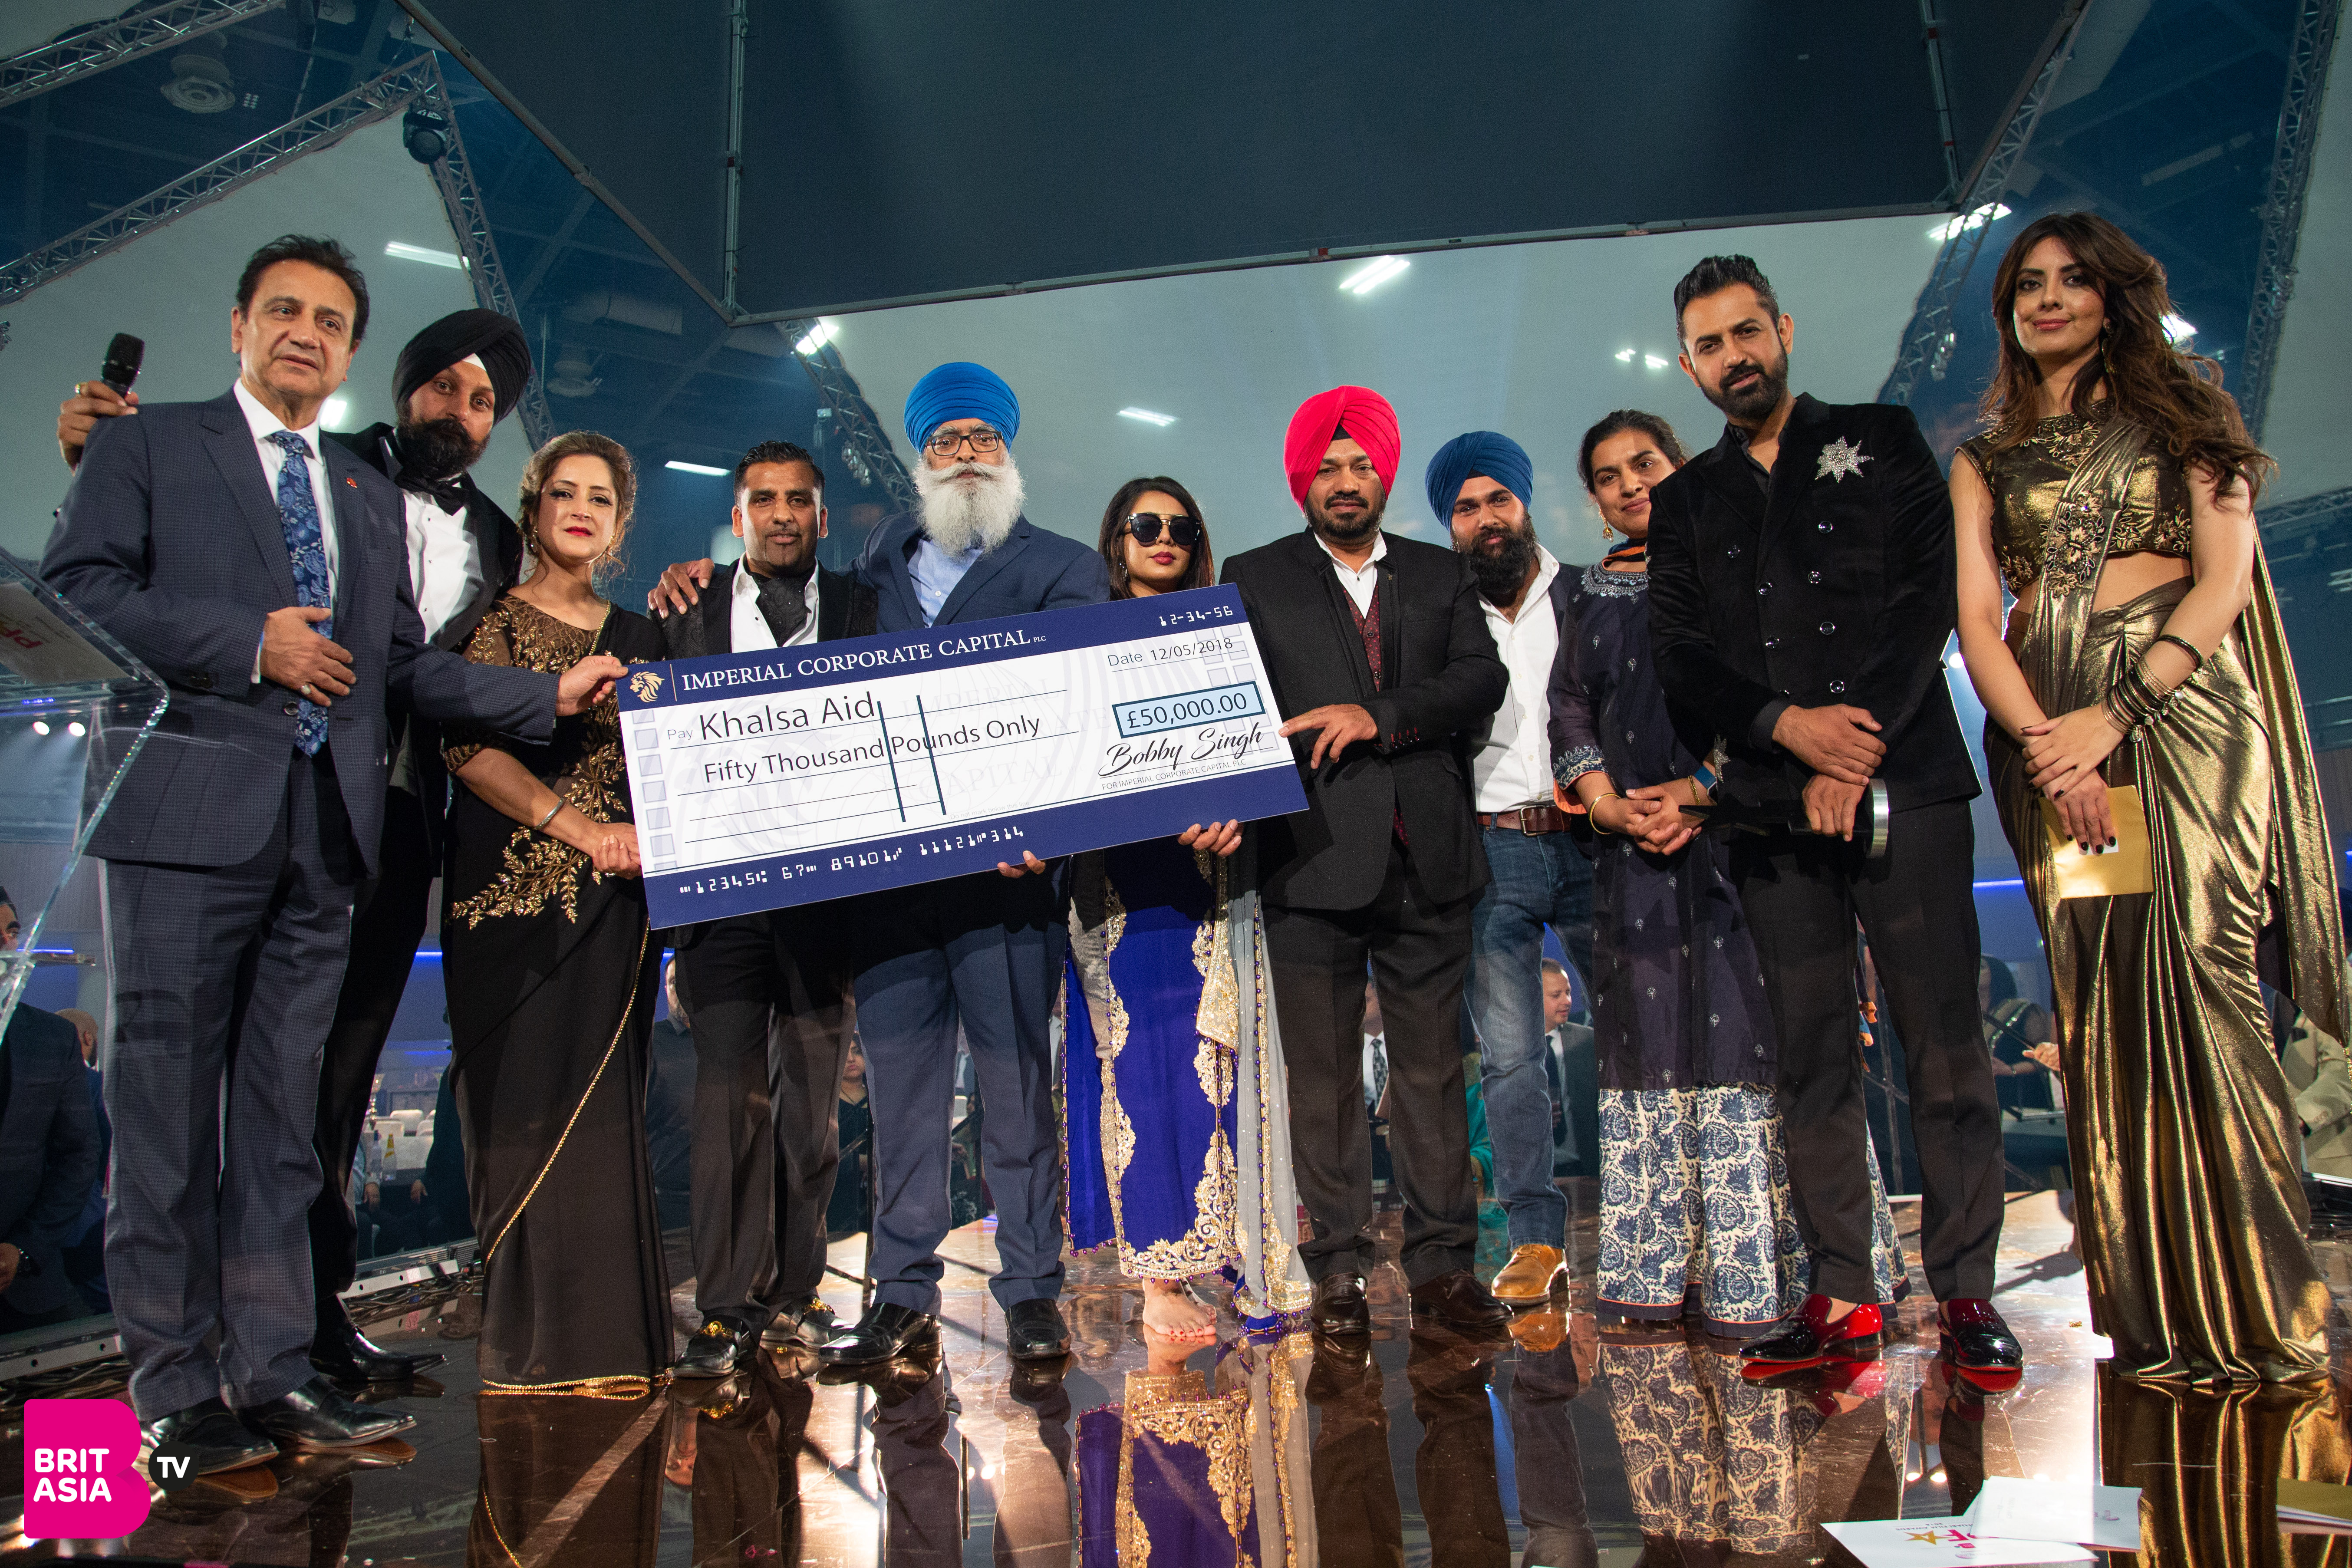 Ravi Singh CEO of Khalsa Aid, presents a cheque for £50,000 from imperial Capital chairman Bobby Singh